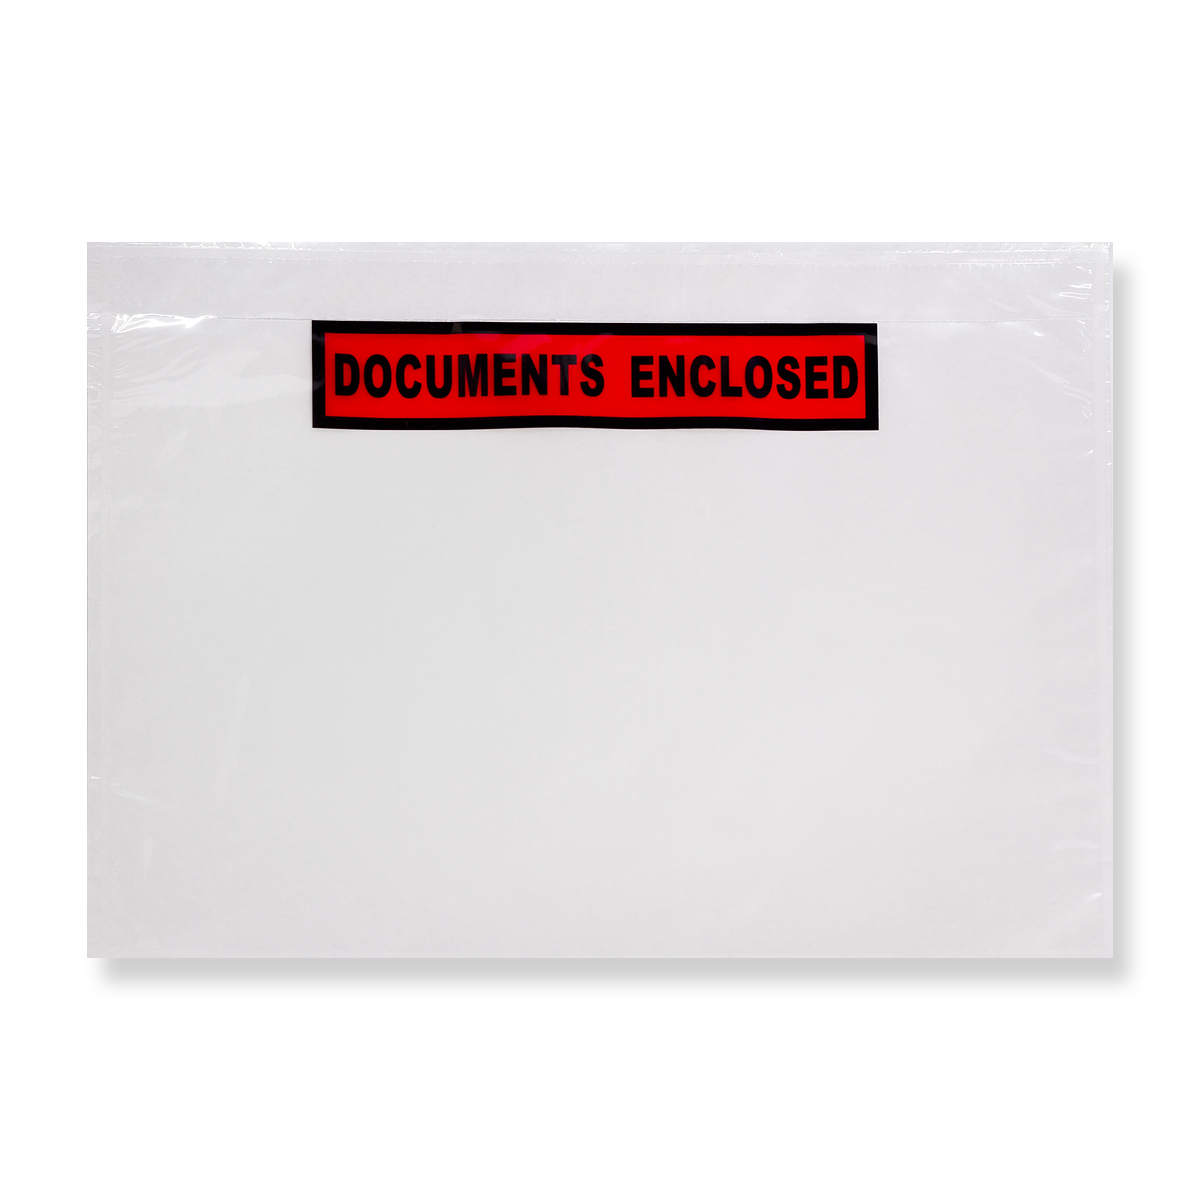 C5 CLEAR DOCUMENTS ENCLOSED WALLETS PRINTED (229 x 162mm)